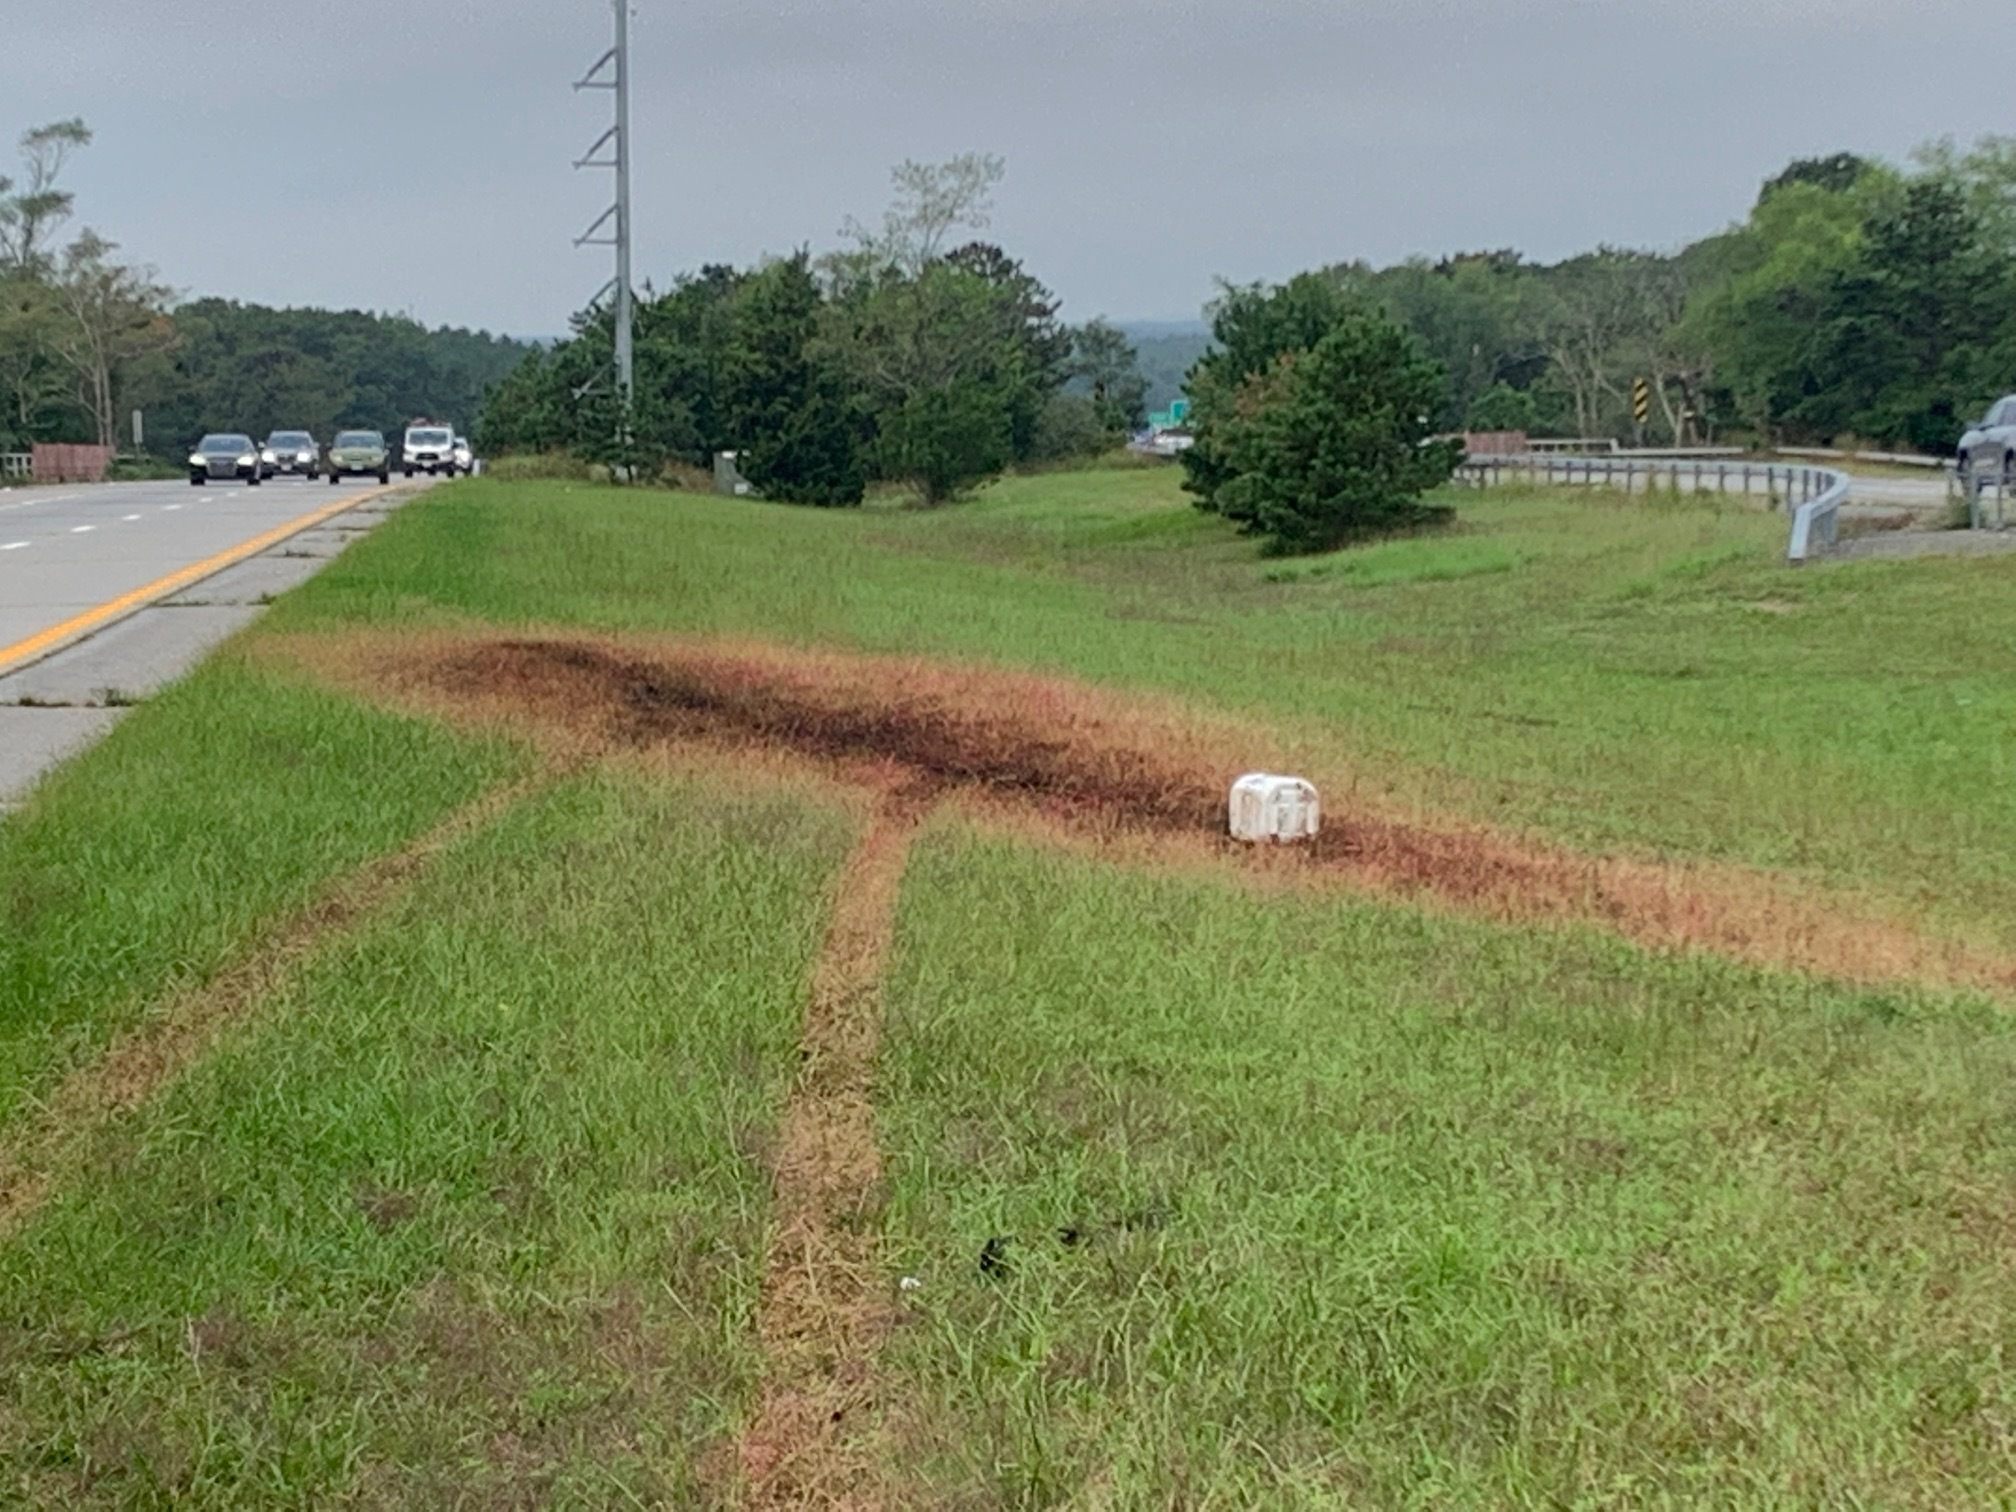 A chemical spill burned a swatch of grass on the shoulder of Sunrise Highway, closing one of its lanes Wednesday morning.